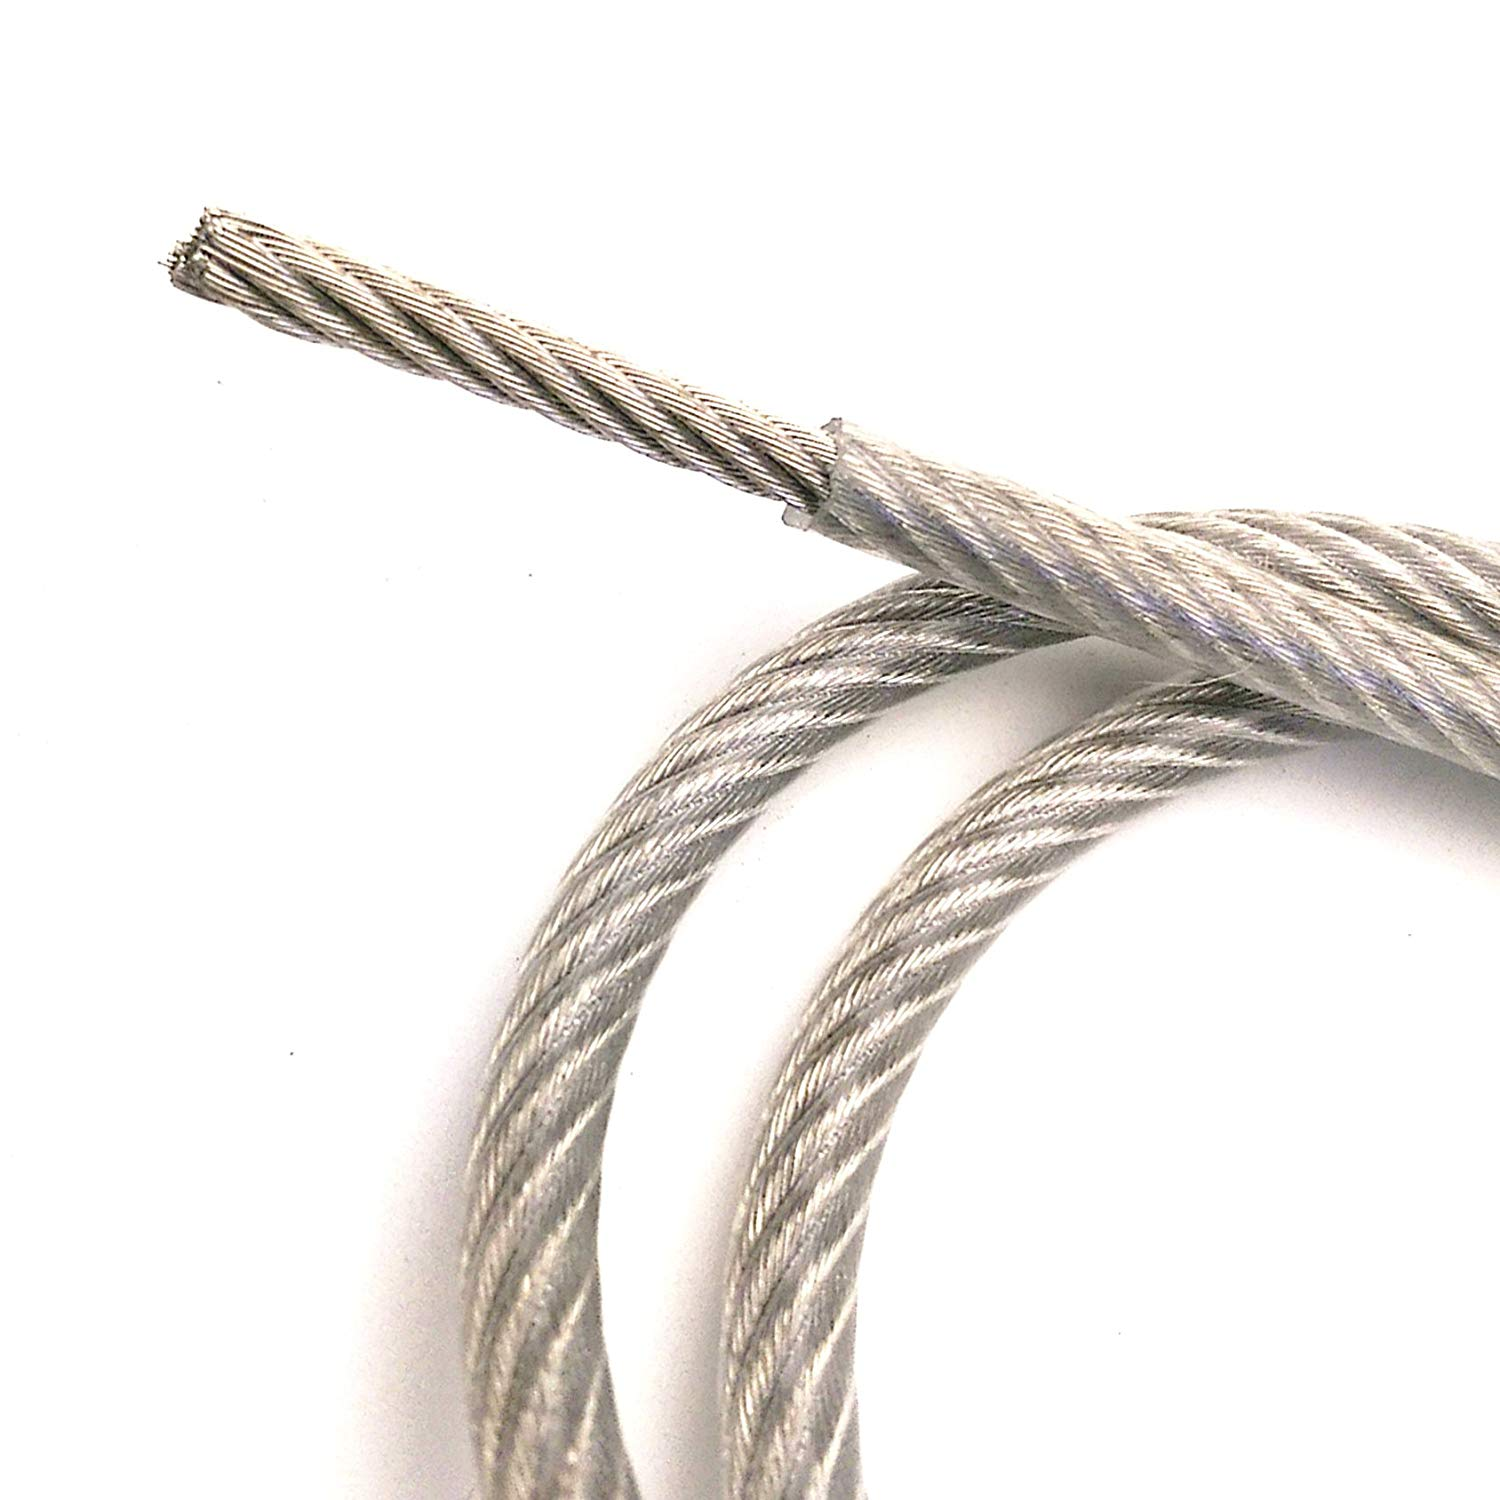 Cheap 8x19 Cable Wire, find 8x19 Cable Wire deals on line at Alibaba.com